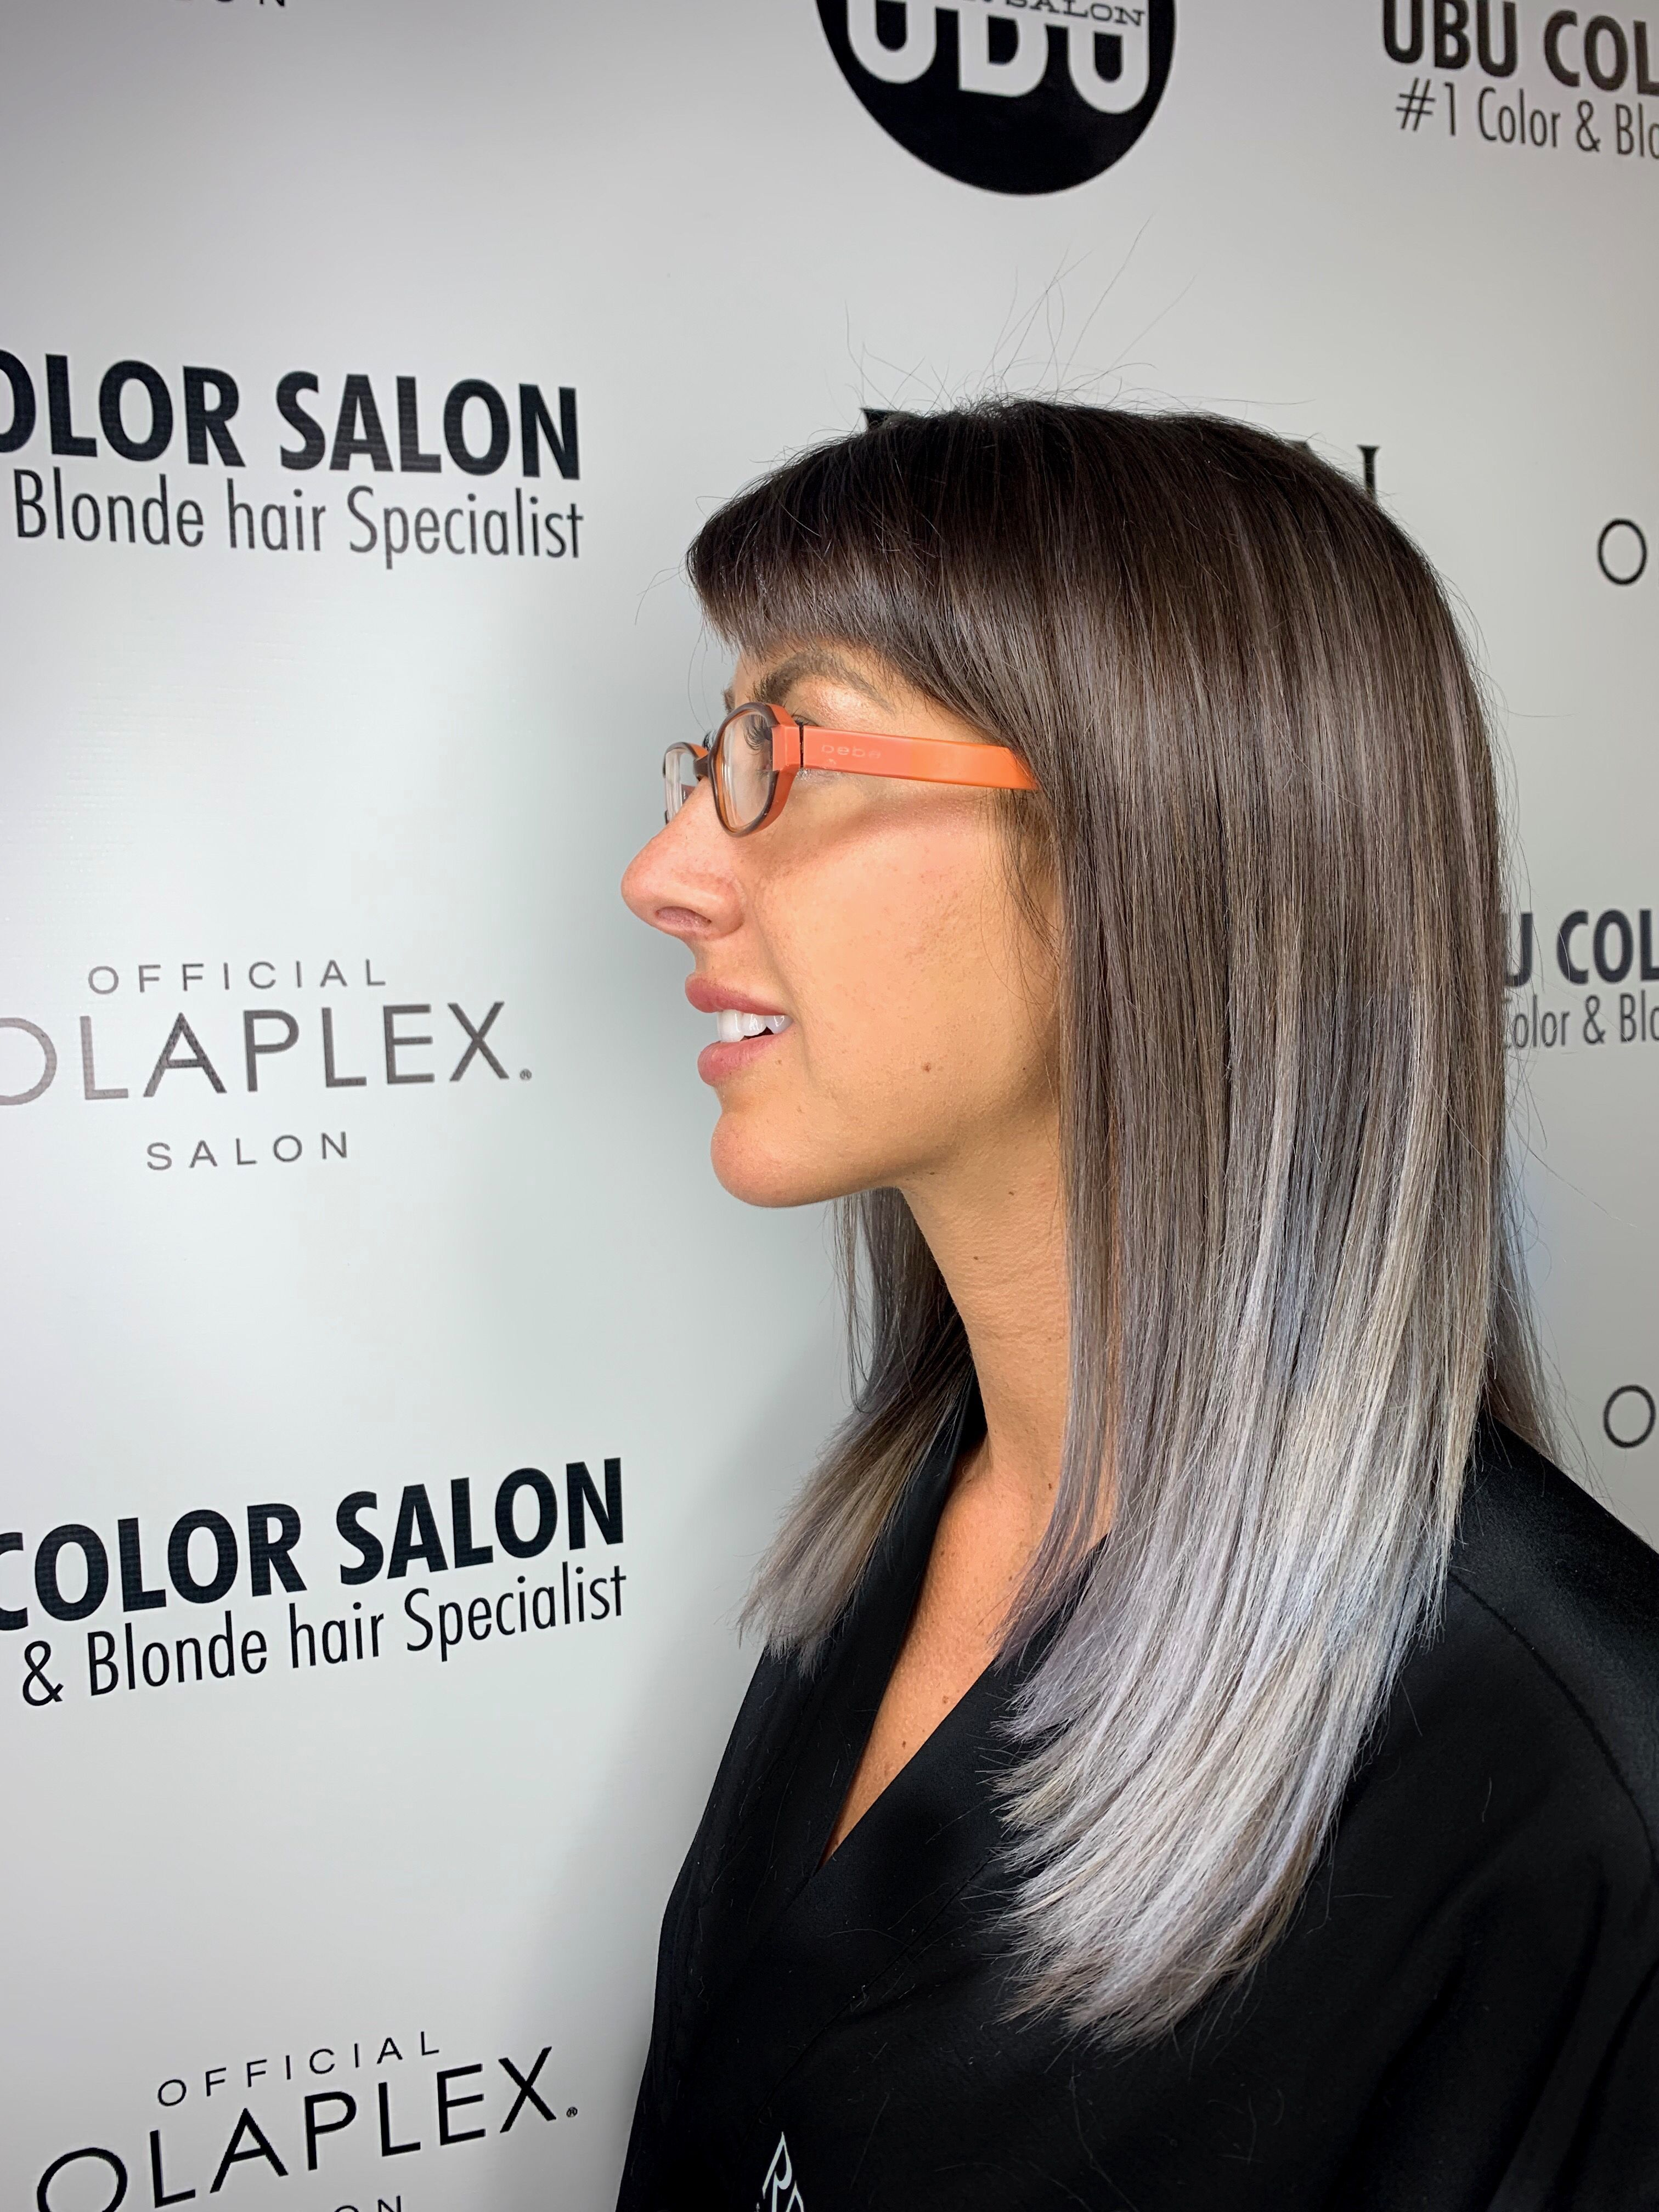 Home Ubu Color Salon In Tampa Fl Hair Specialist Silver Hair Platinum Blonde